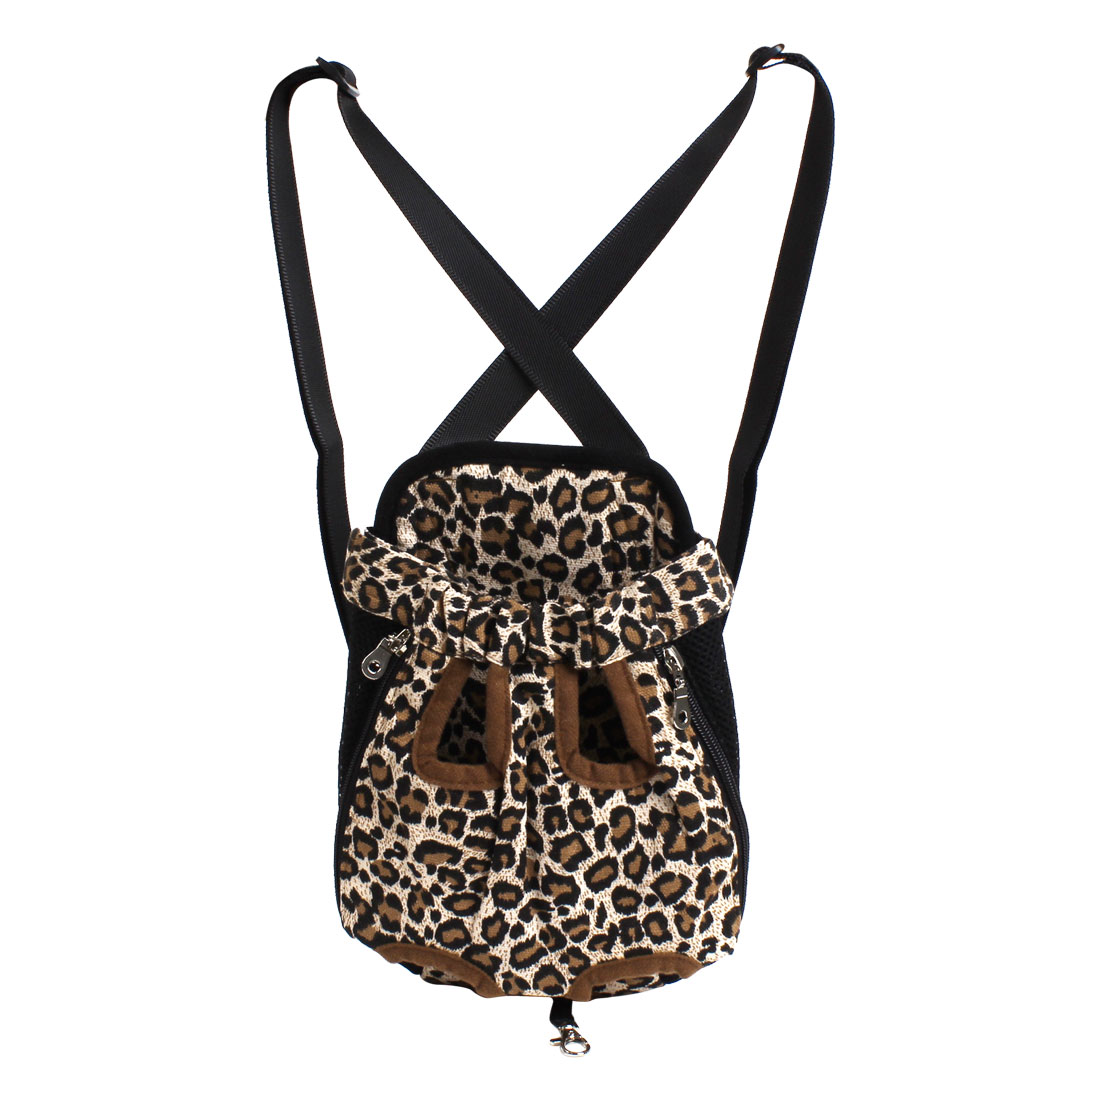 Leopard Print Adjustable Strap Release Buckle Pet Dog Outdoor Carrying Bag M